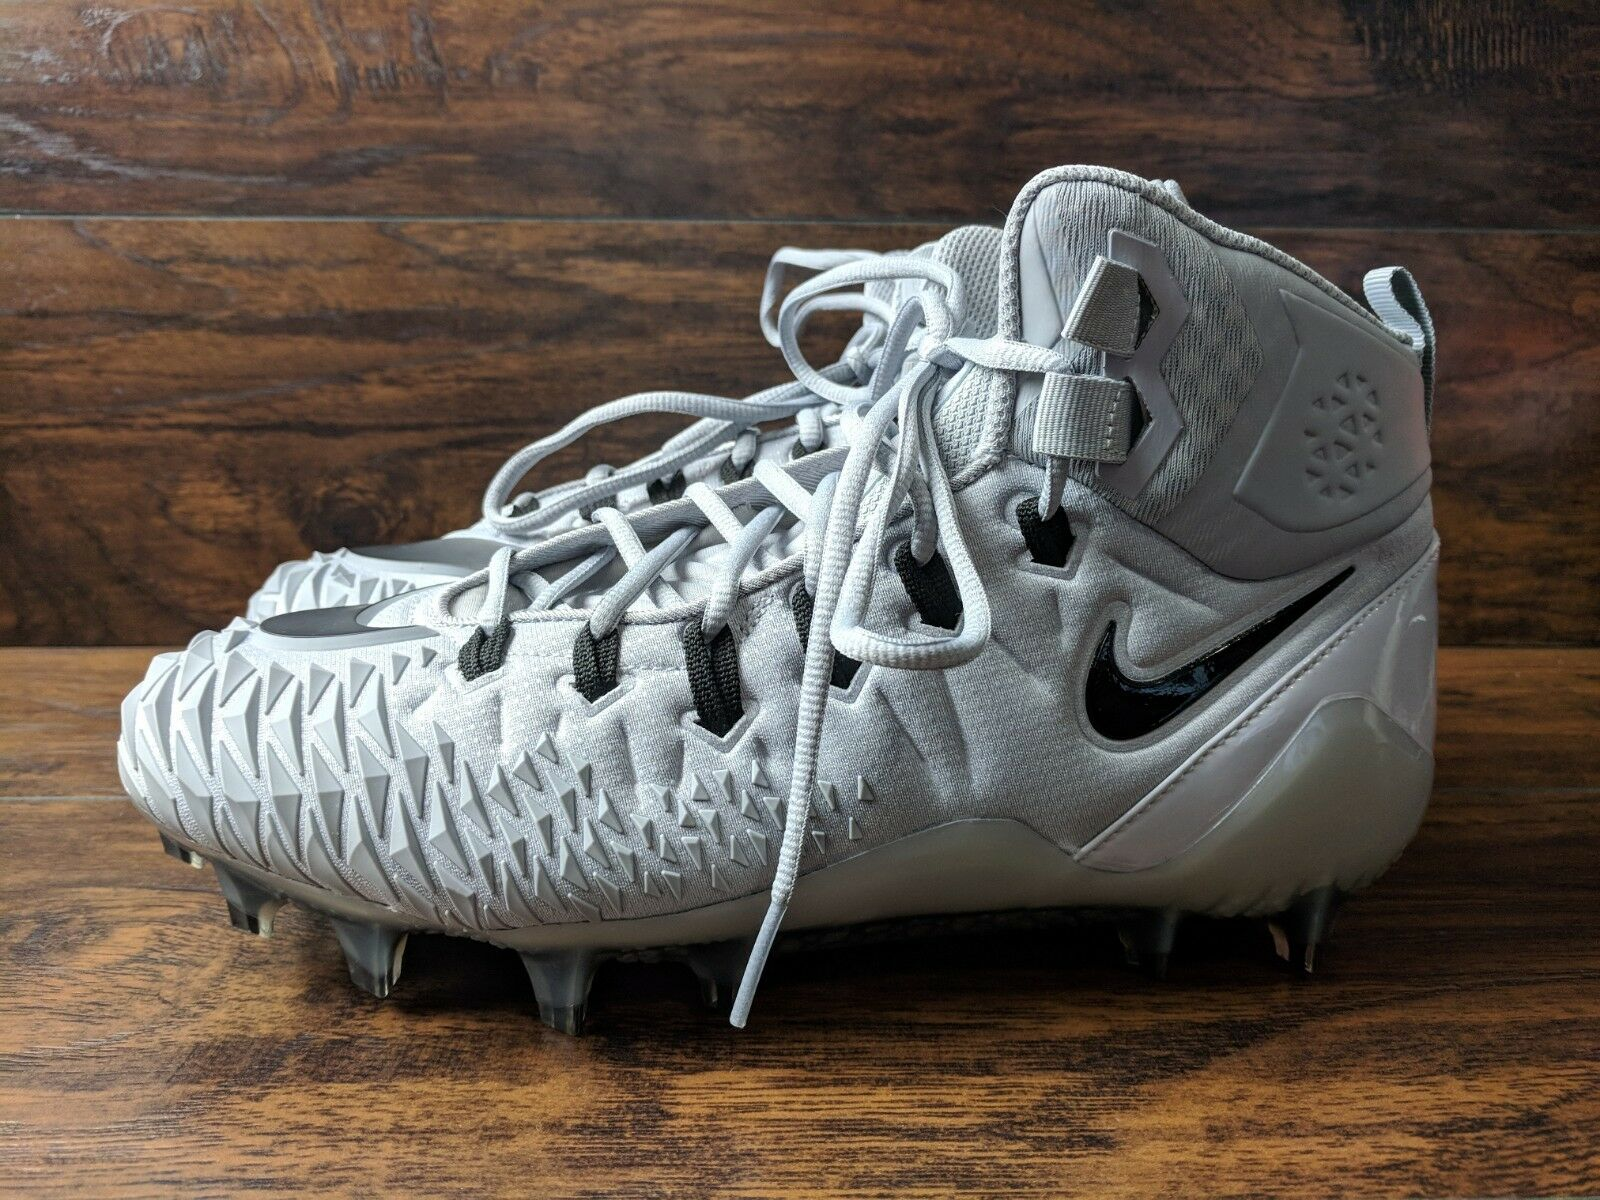 nouvelle force td sauvage pro td force hommes nike taille 11 crampons gris - gris 7c57a9